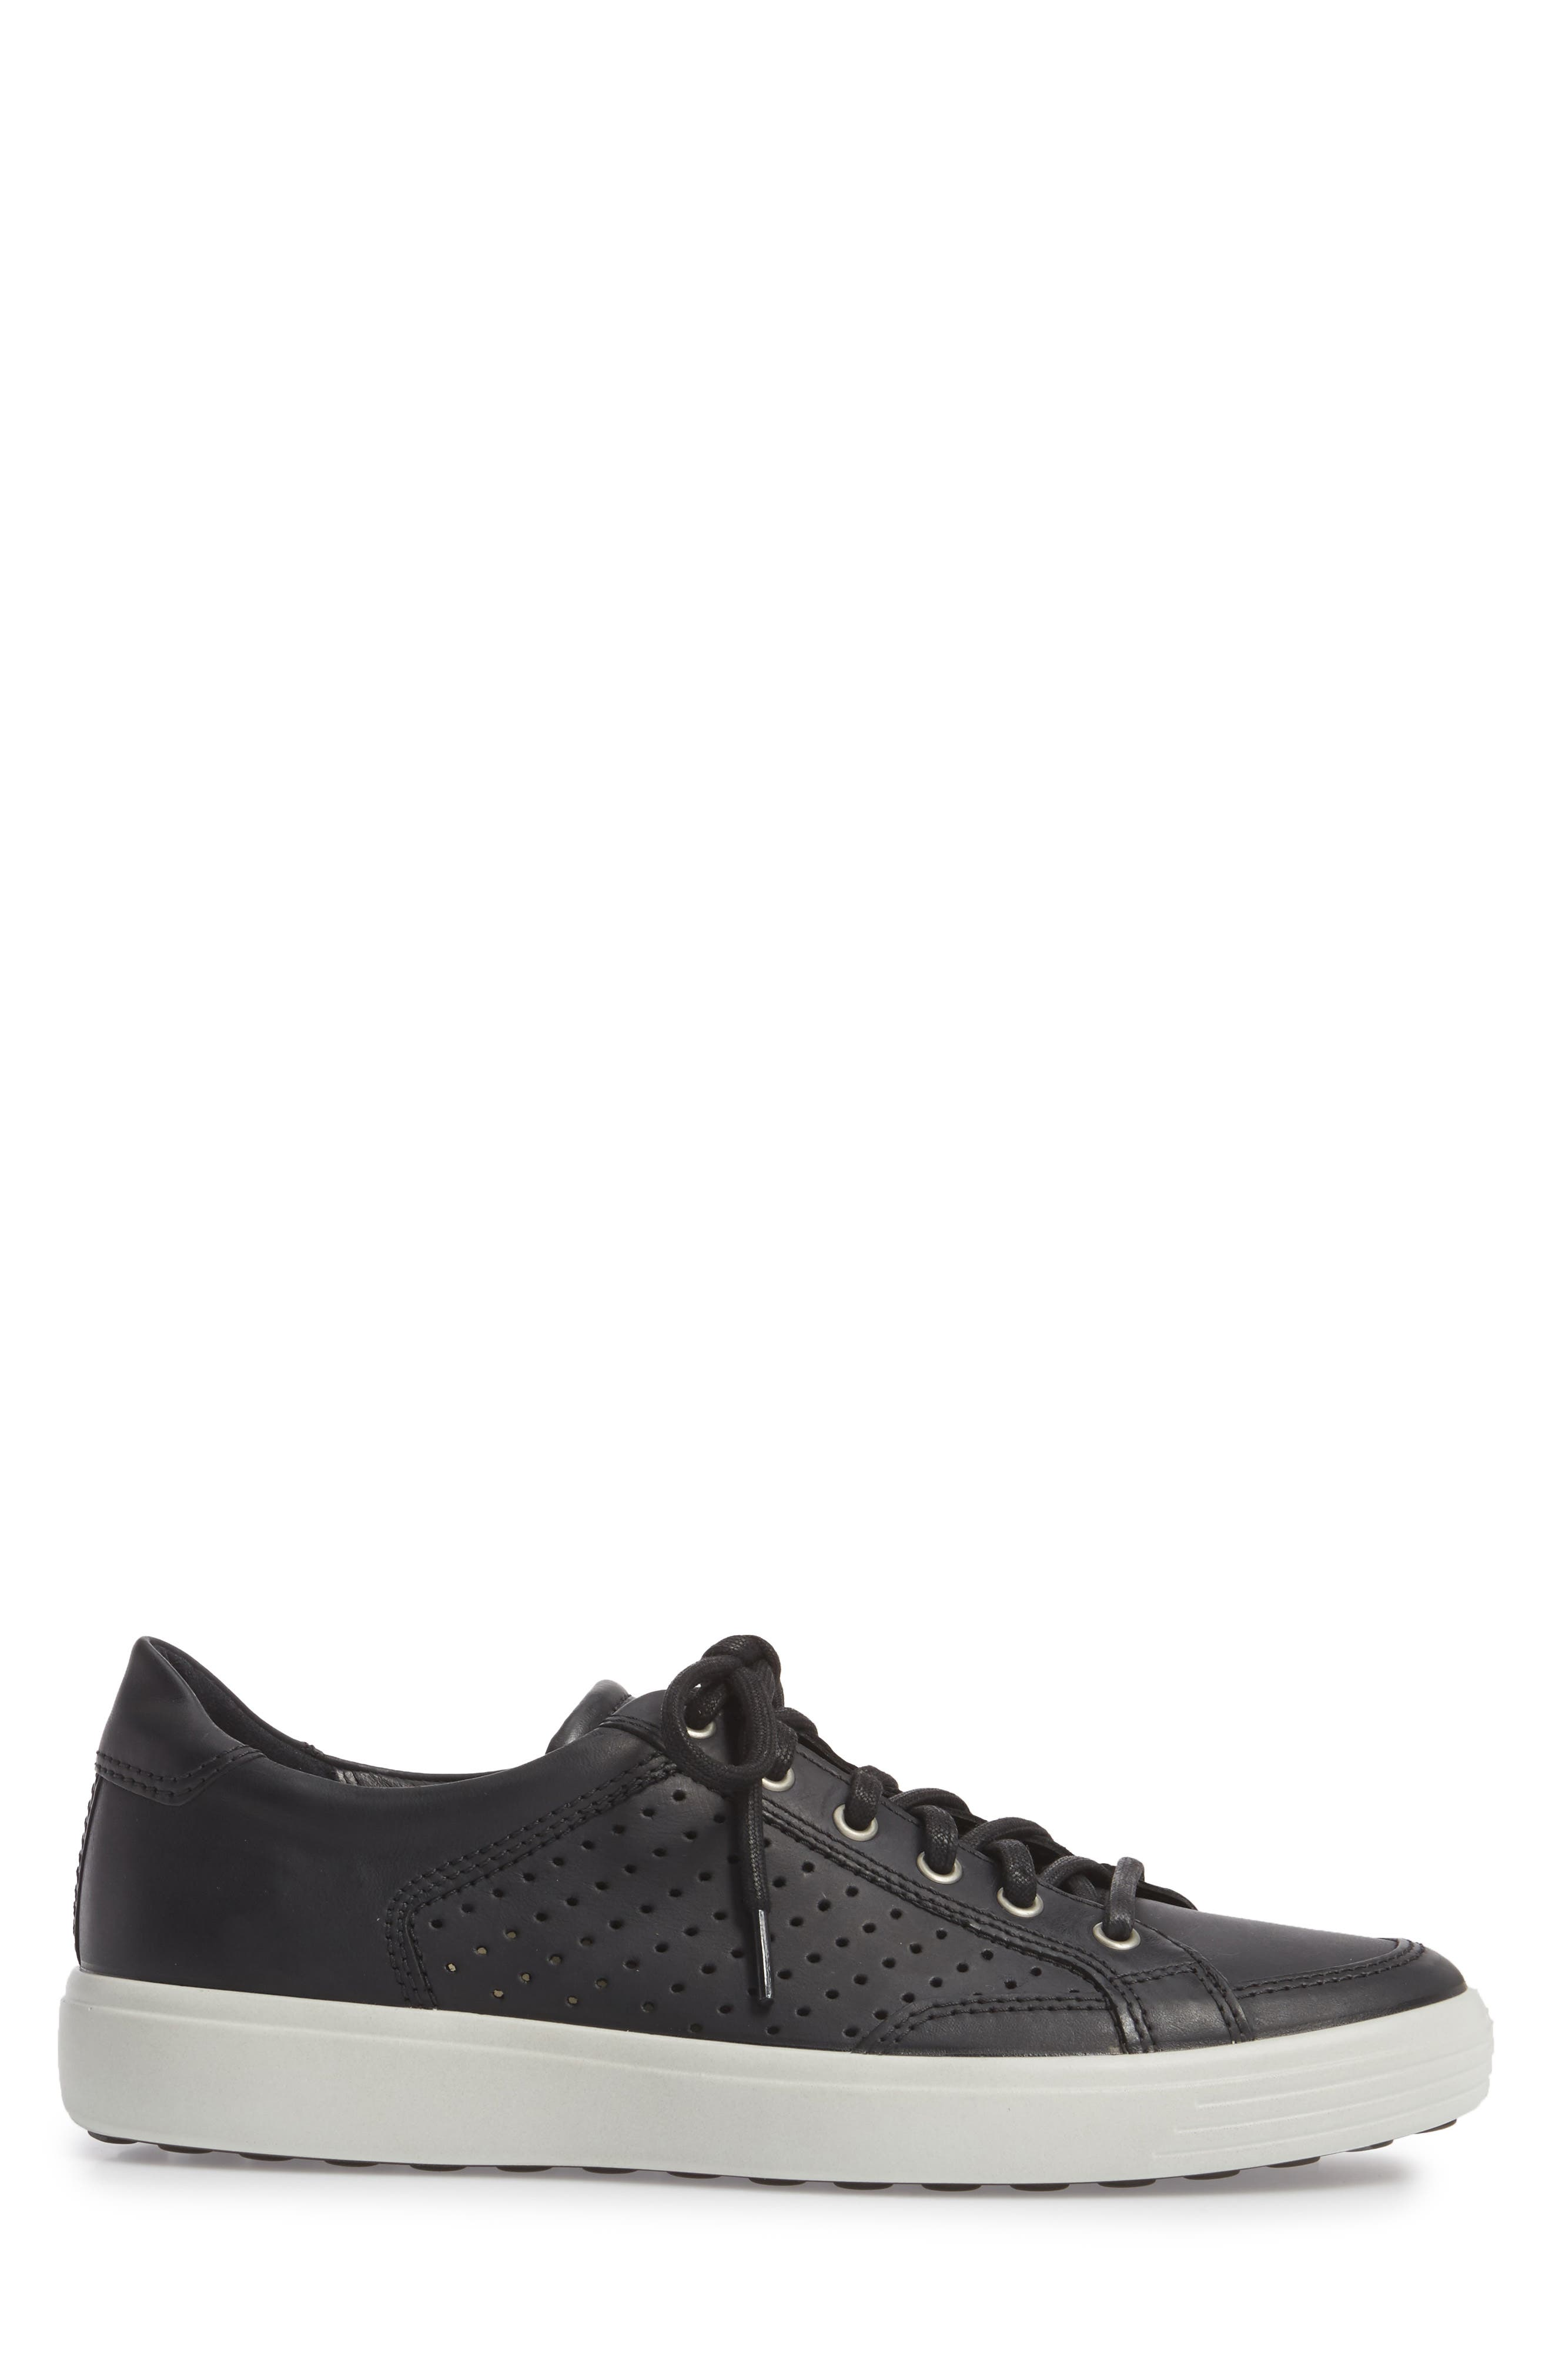 Soft 7 Retro Perforated Low Top Sneaker,                             Alternate thumbnail 3, color,                             Black Leather